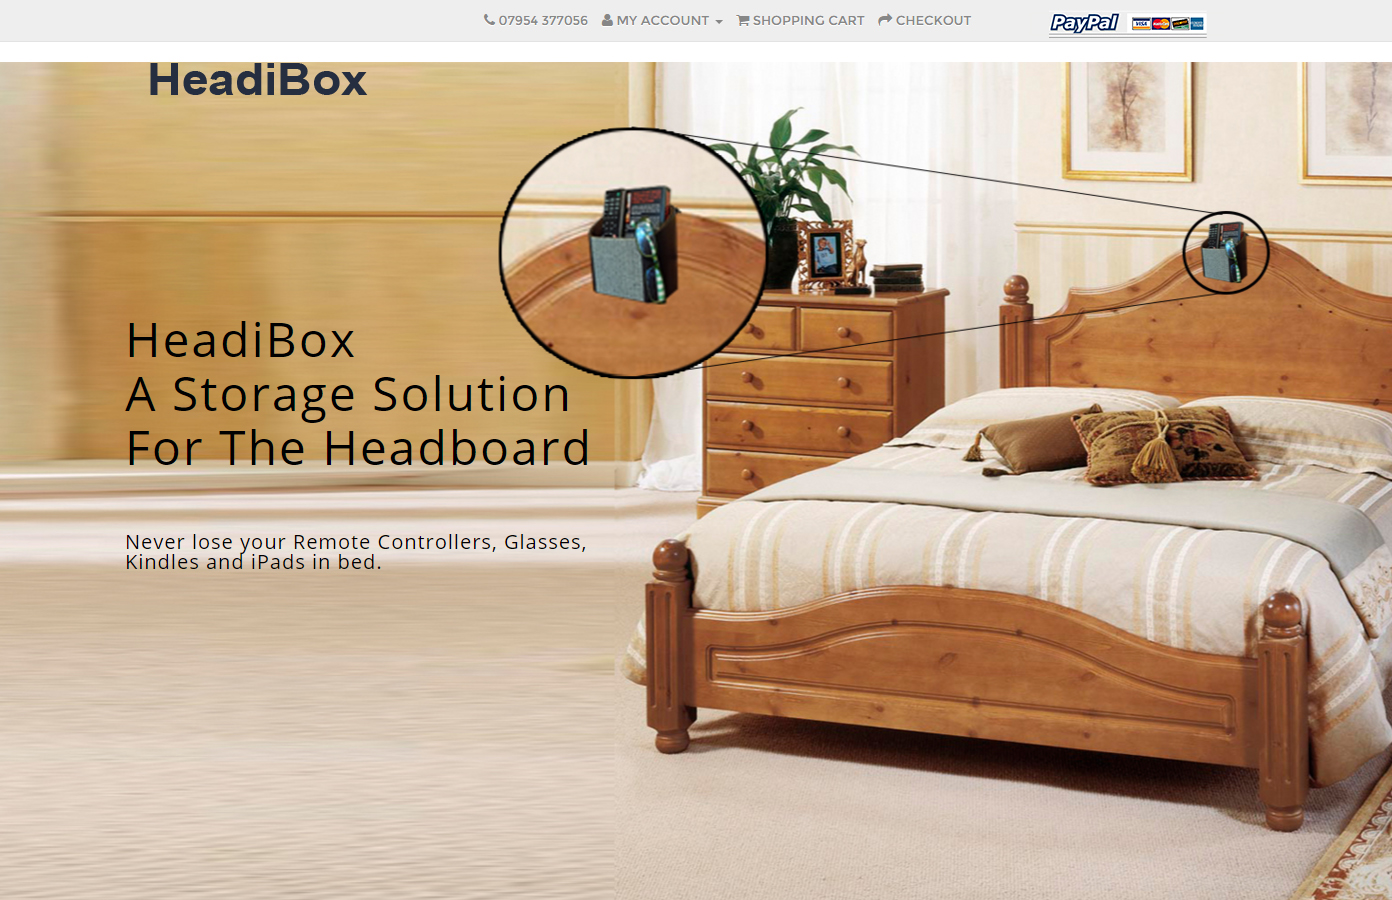 HeadiBox-Website.jpg